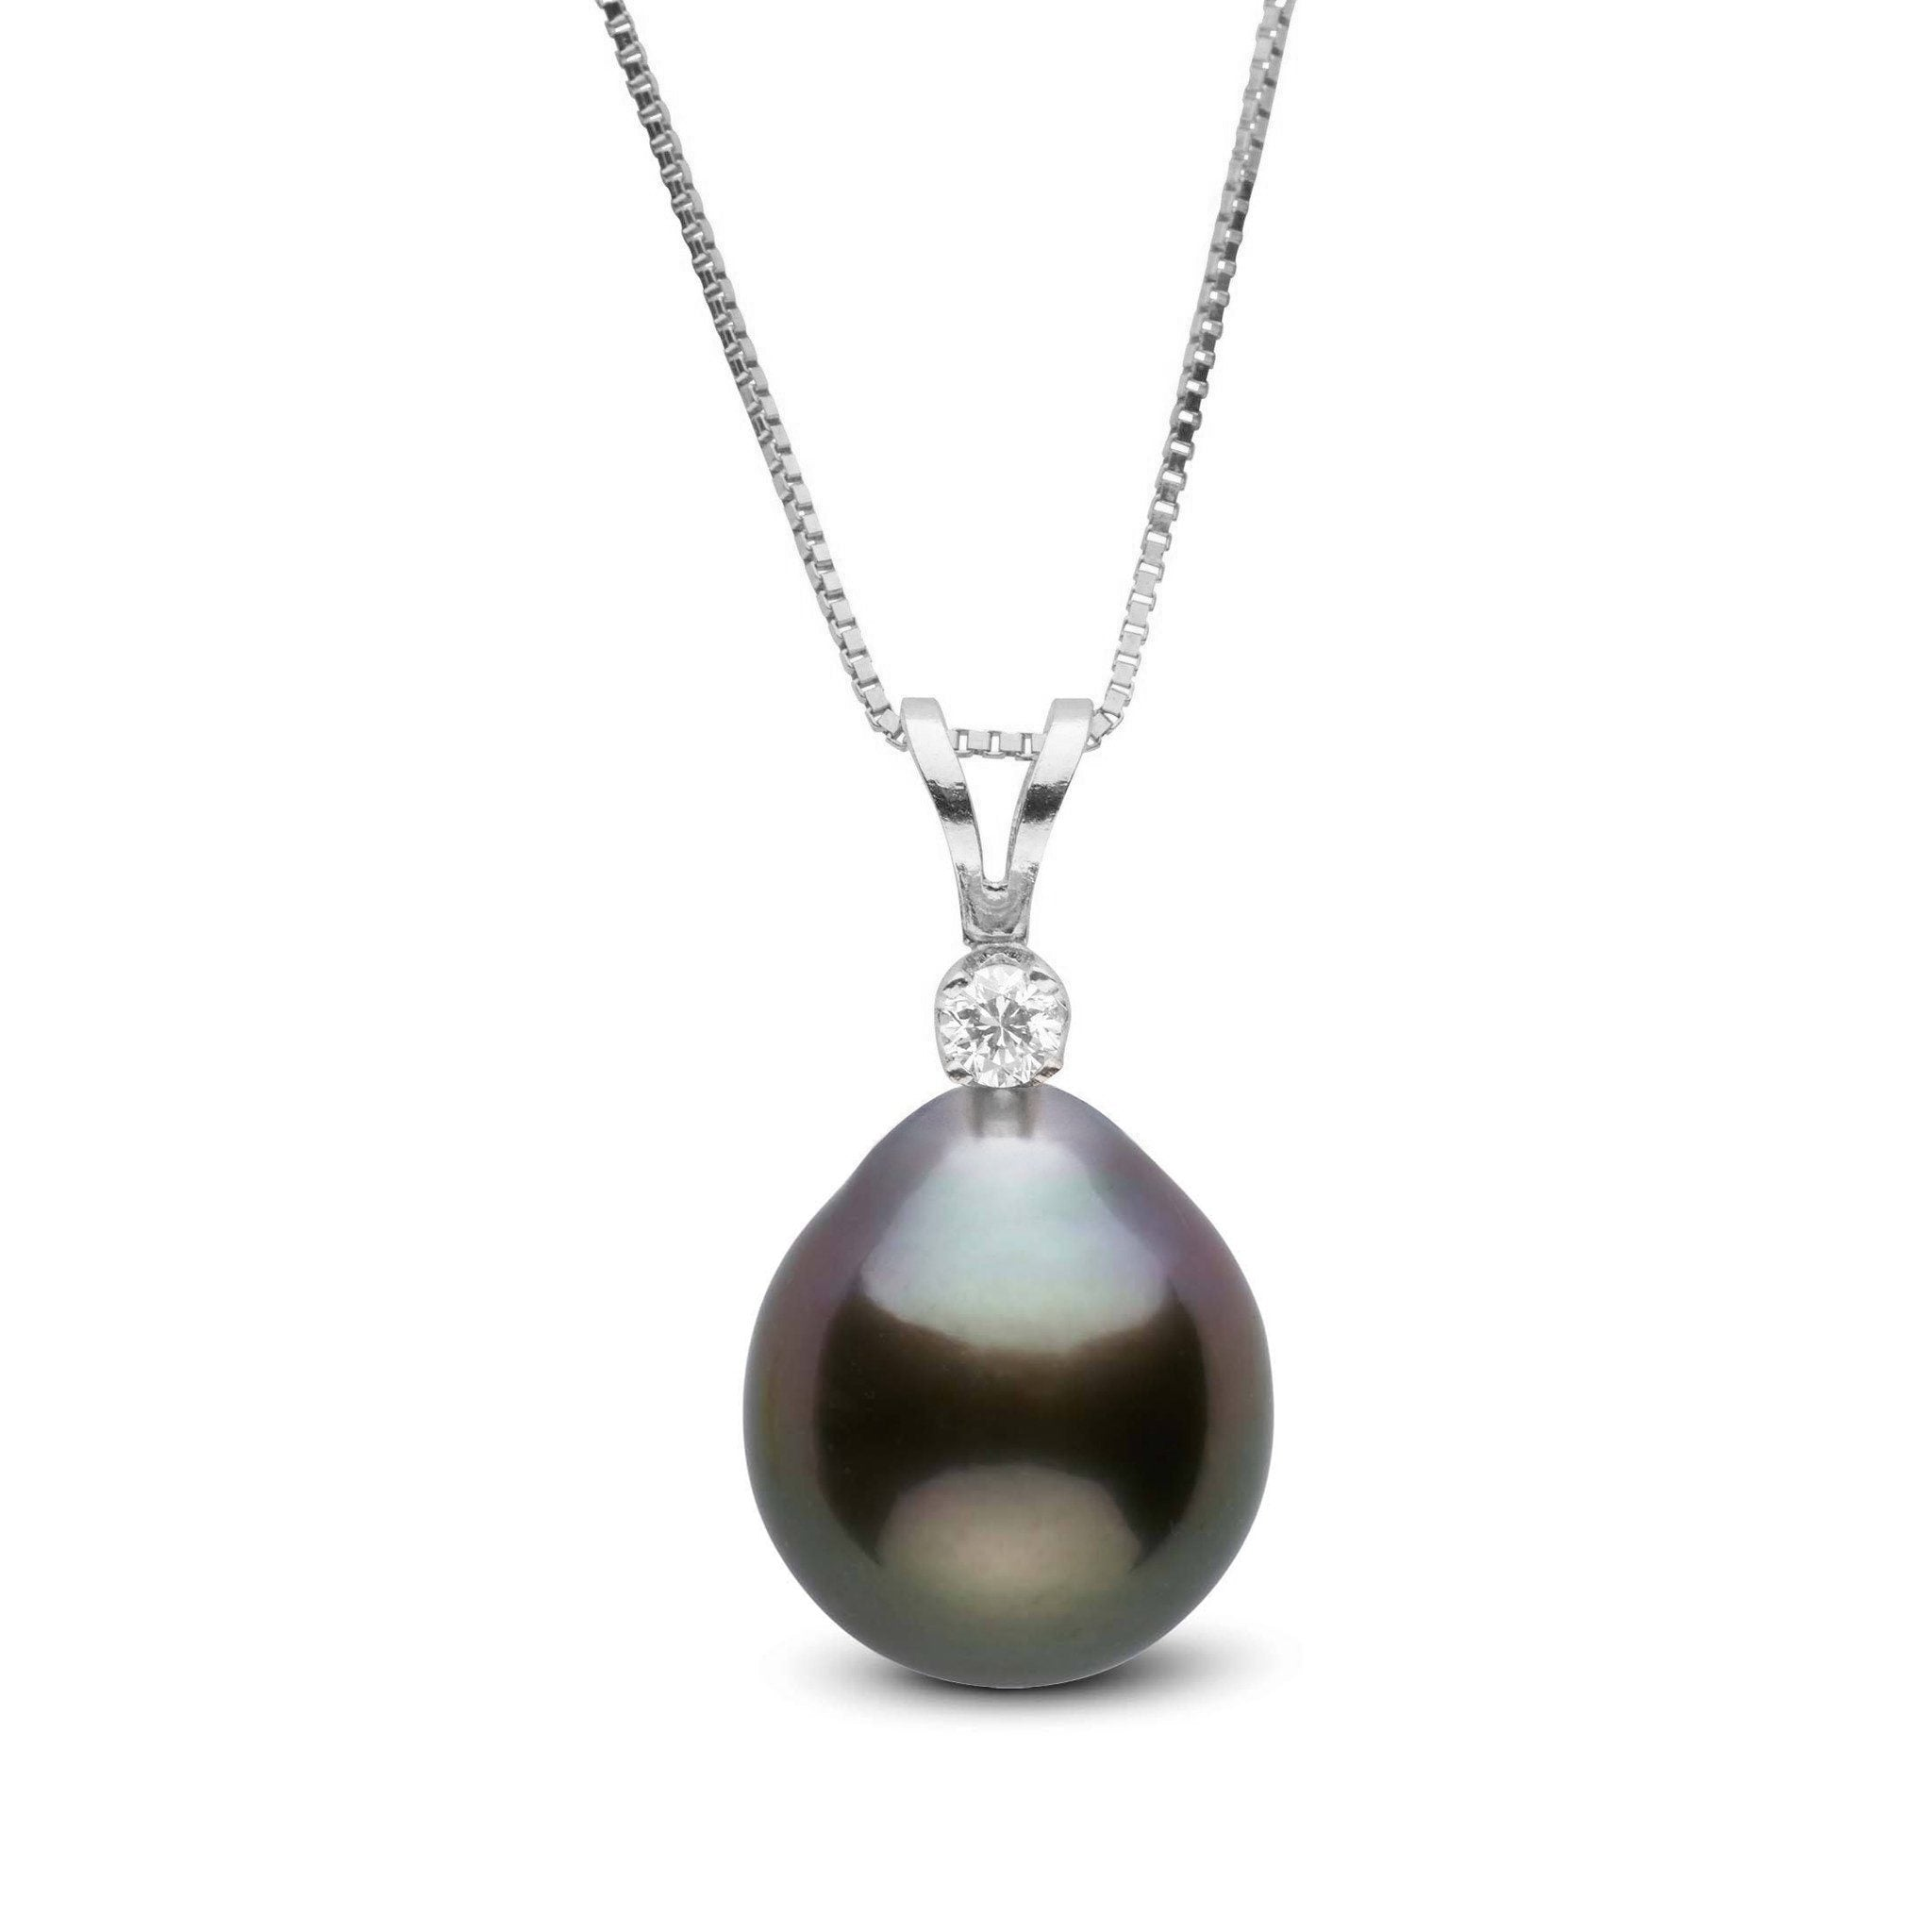 Harmony Collection 9.0-10.0 mm Drop Tahitian Pearl & Diamond Pendant